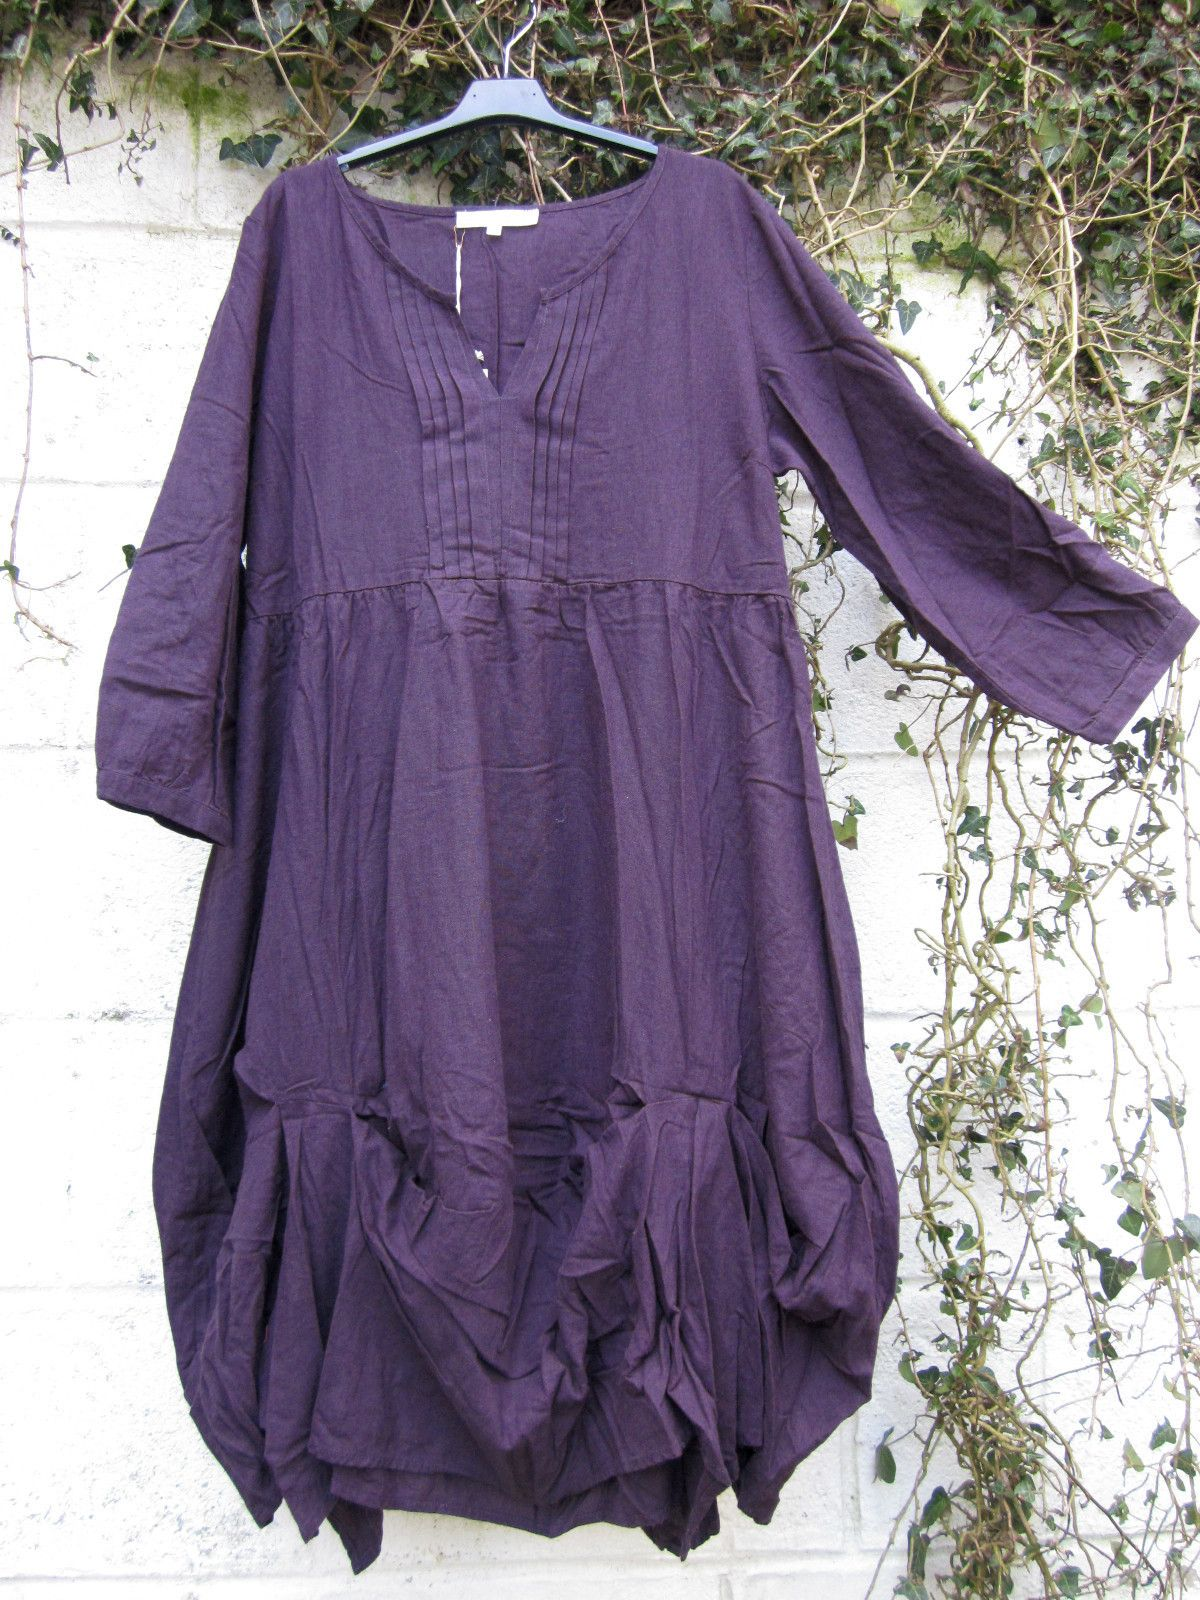 "ORGANIC HEMP DRESS QUIRKY RUCHED HEM AUBERGINE BNWT 38"" - 40"" LAGENLOOK ETHNIC 